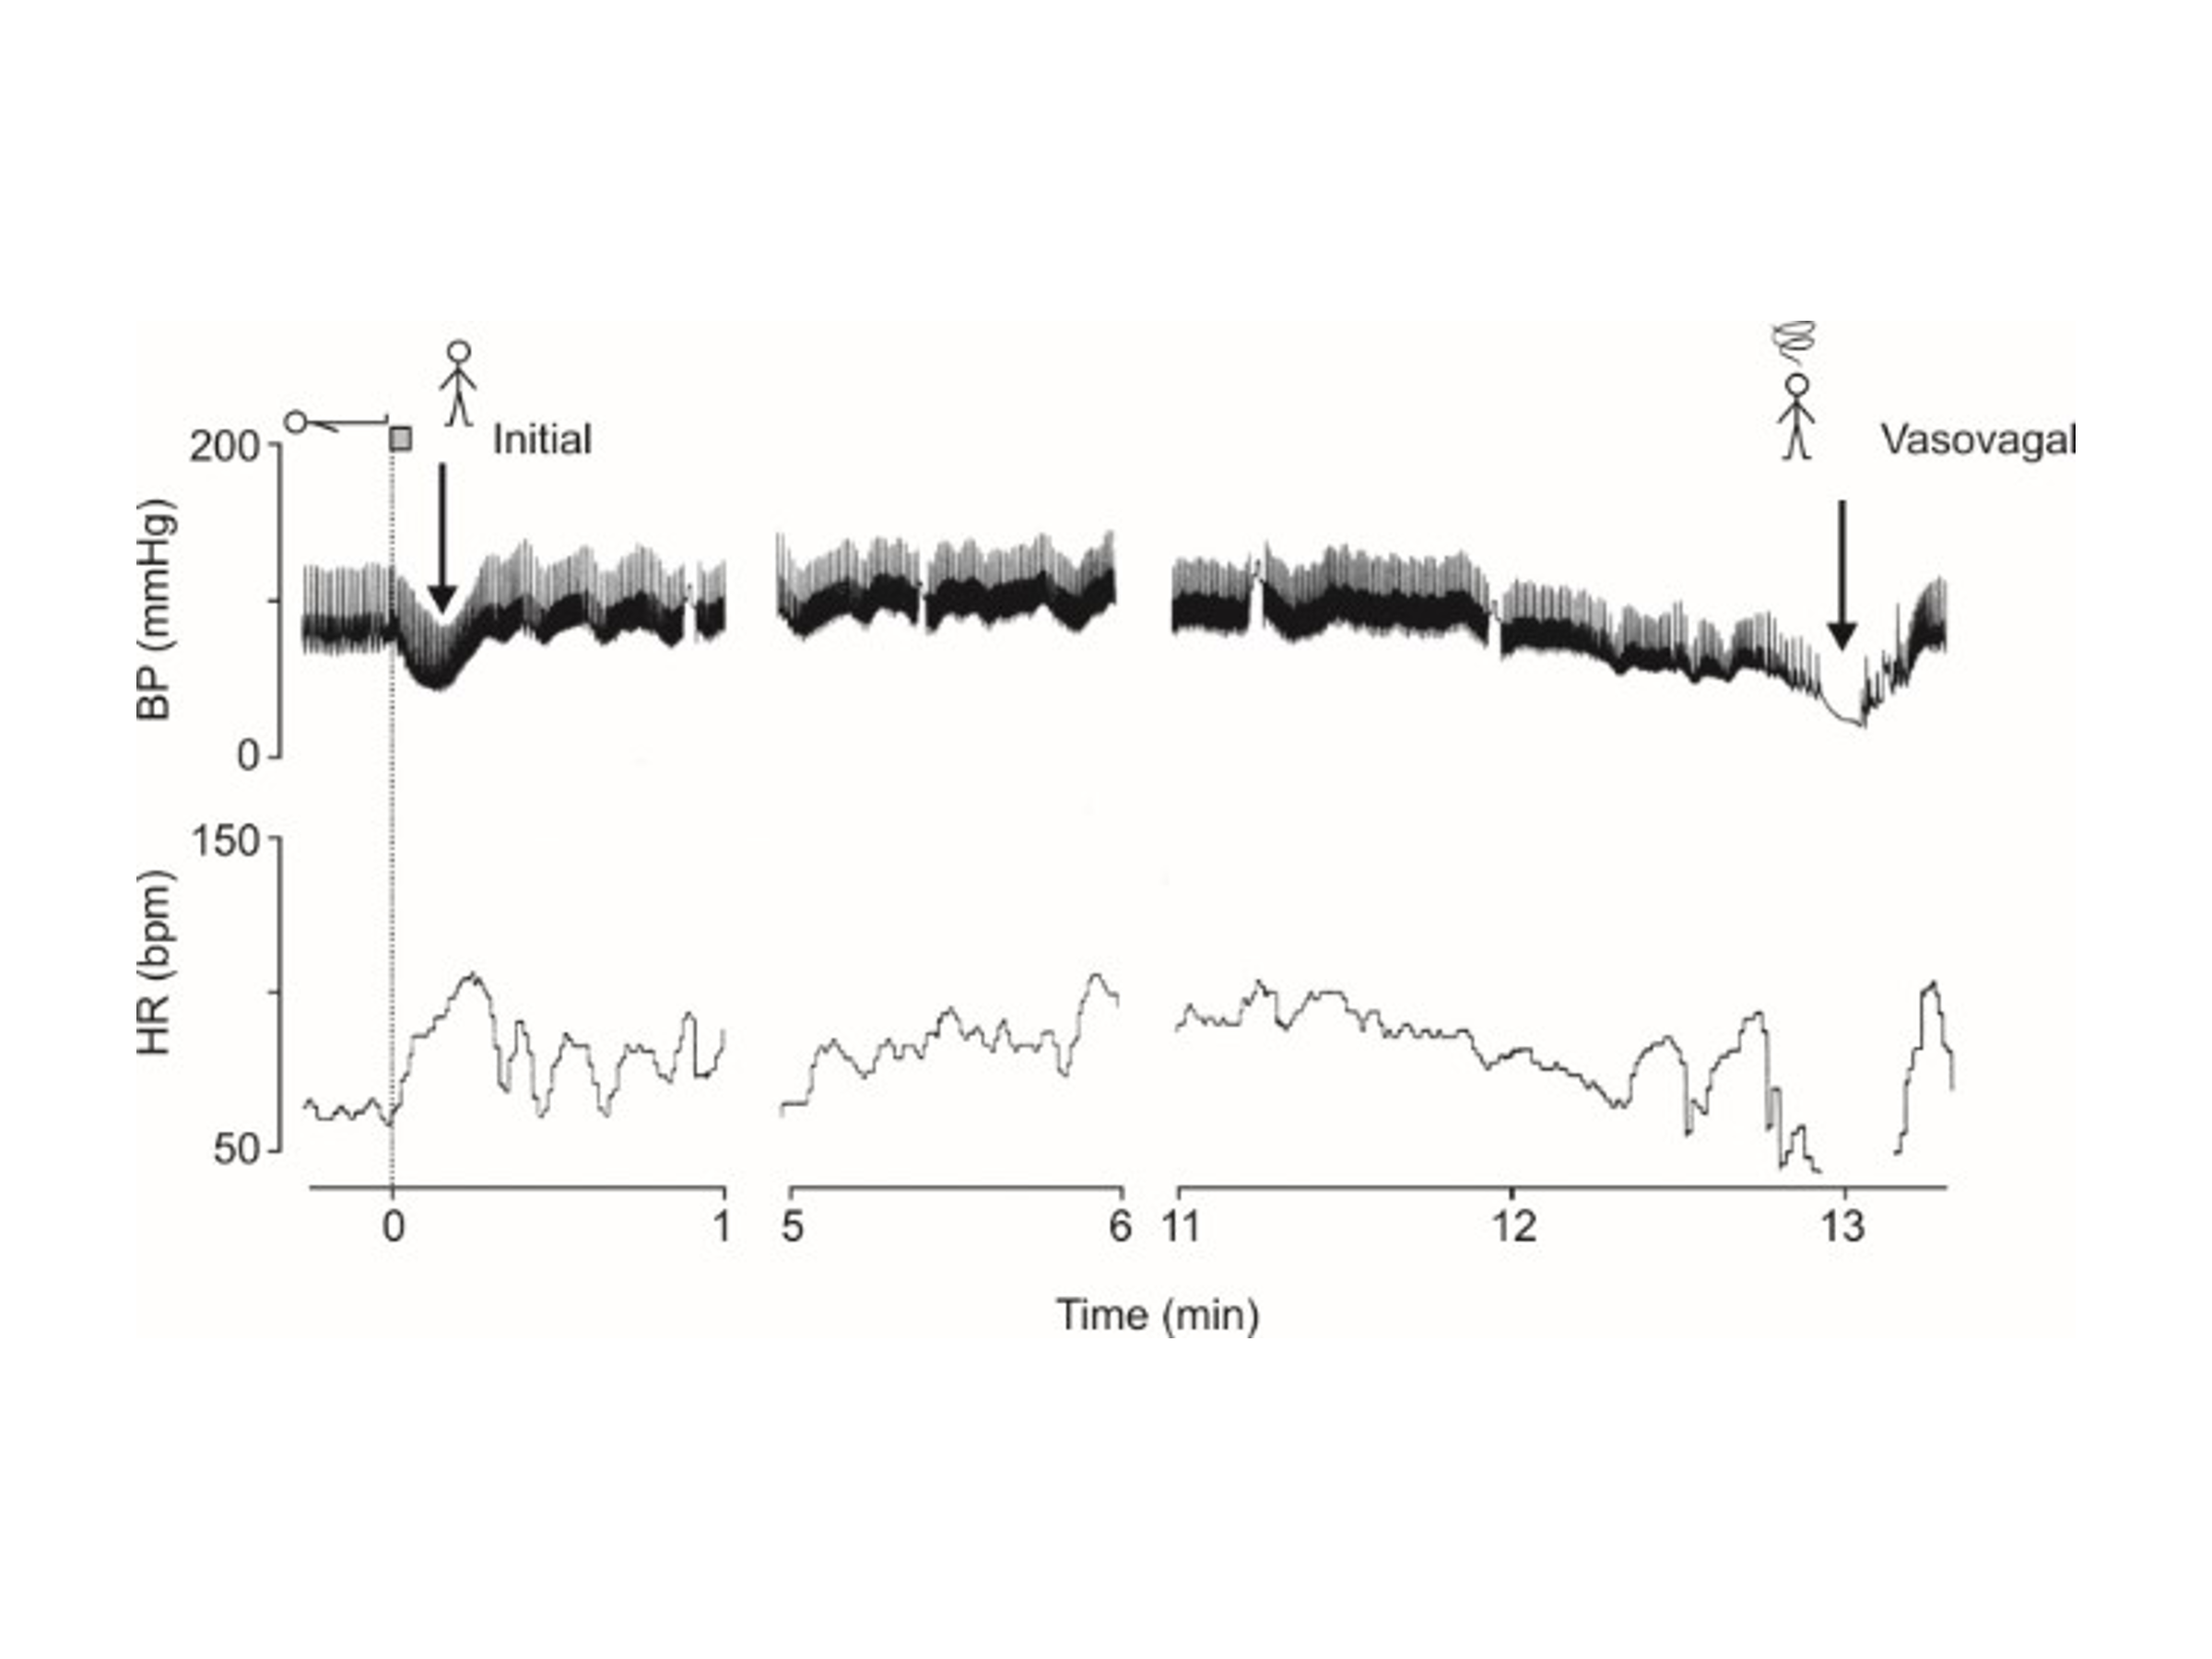 This figure shows the usefulness of a continuous tracing of finger arterial pressure (BP) and heart rate (HR) during cardiovascular reflex testing in a patient with vasovagal syncope.